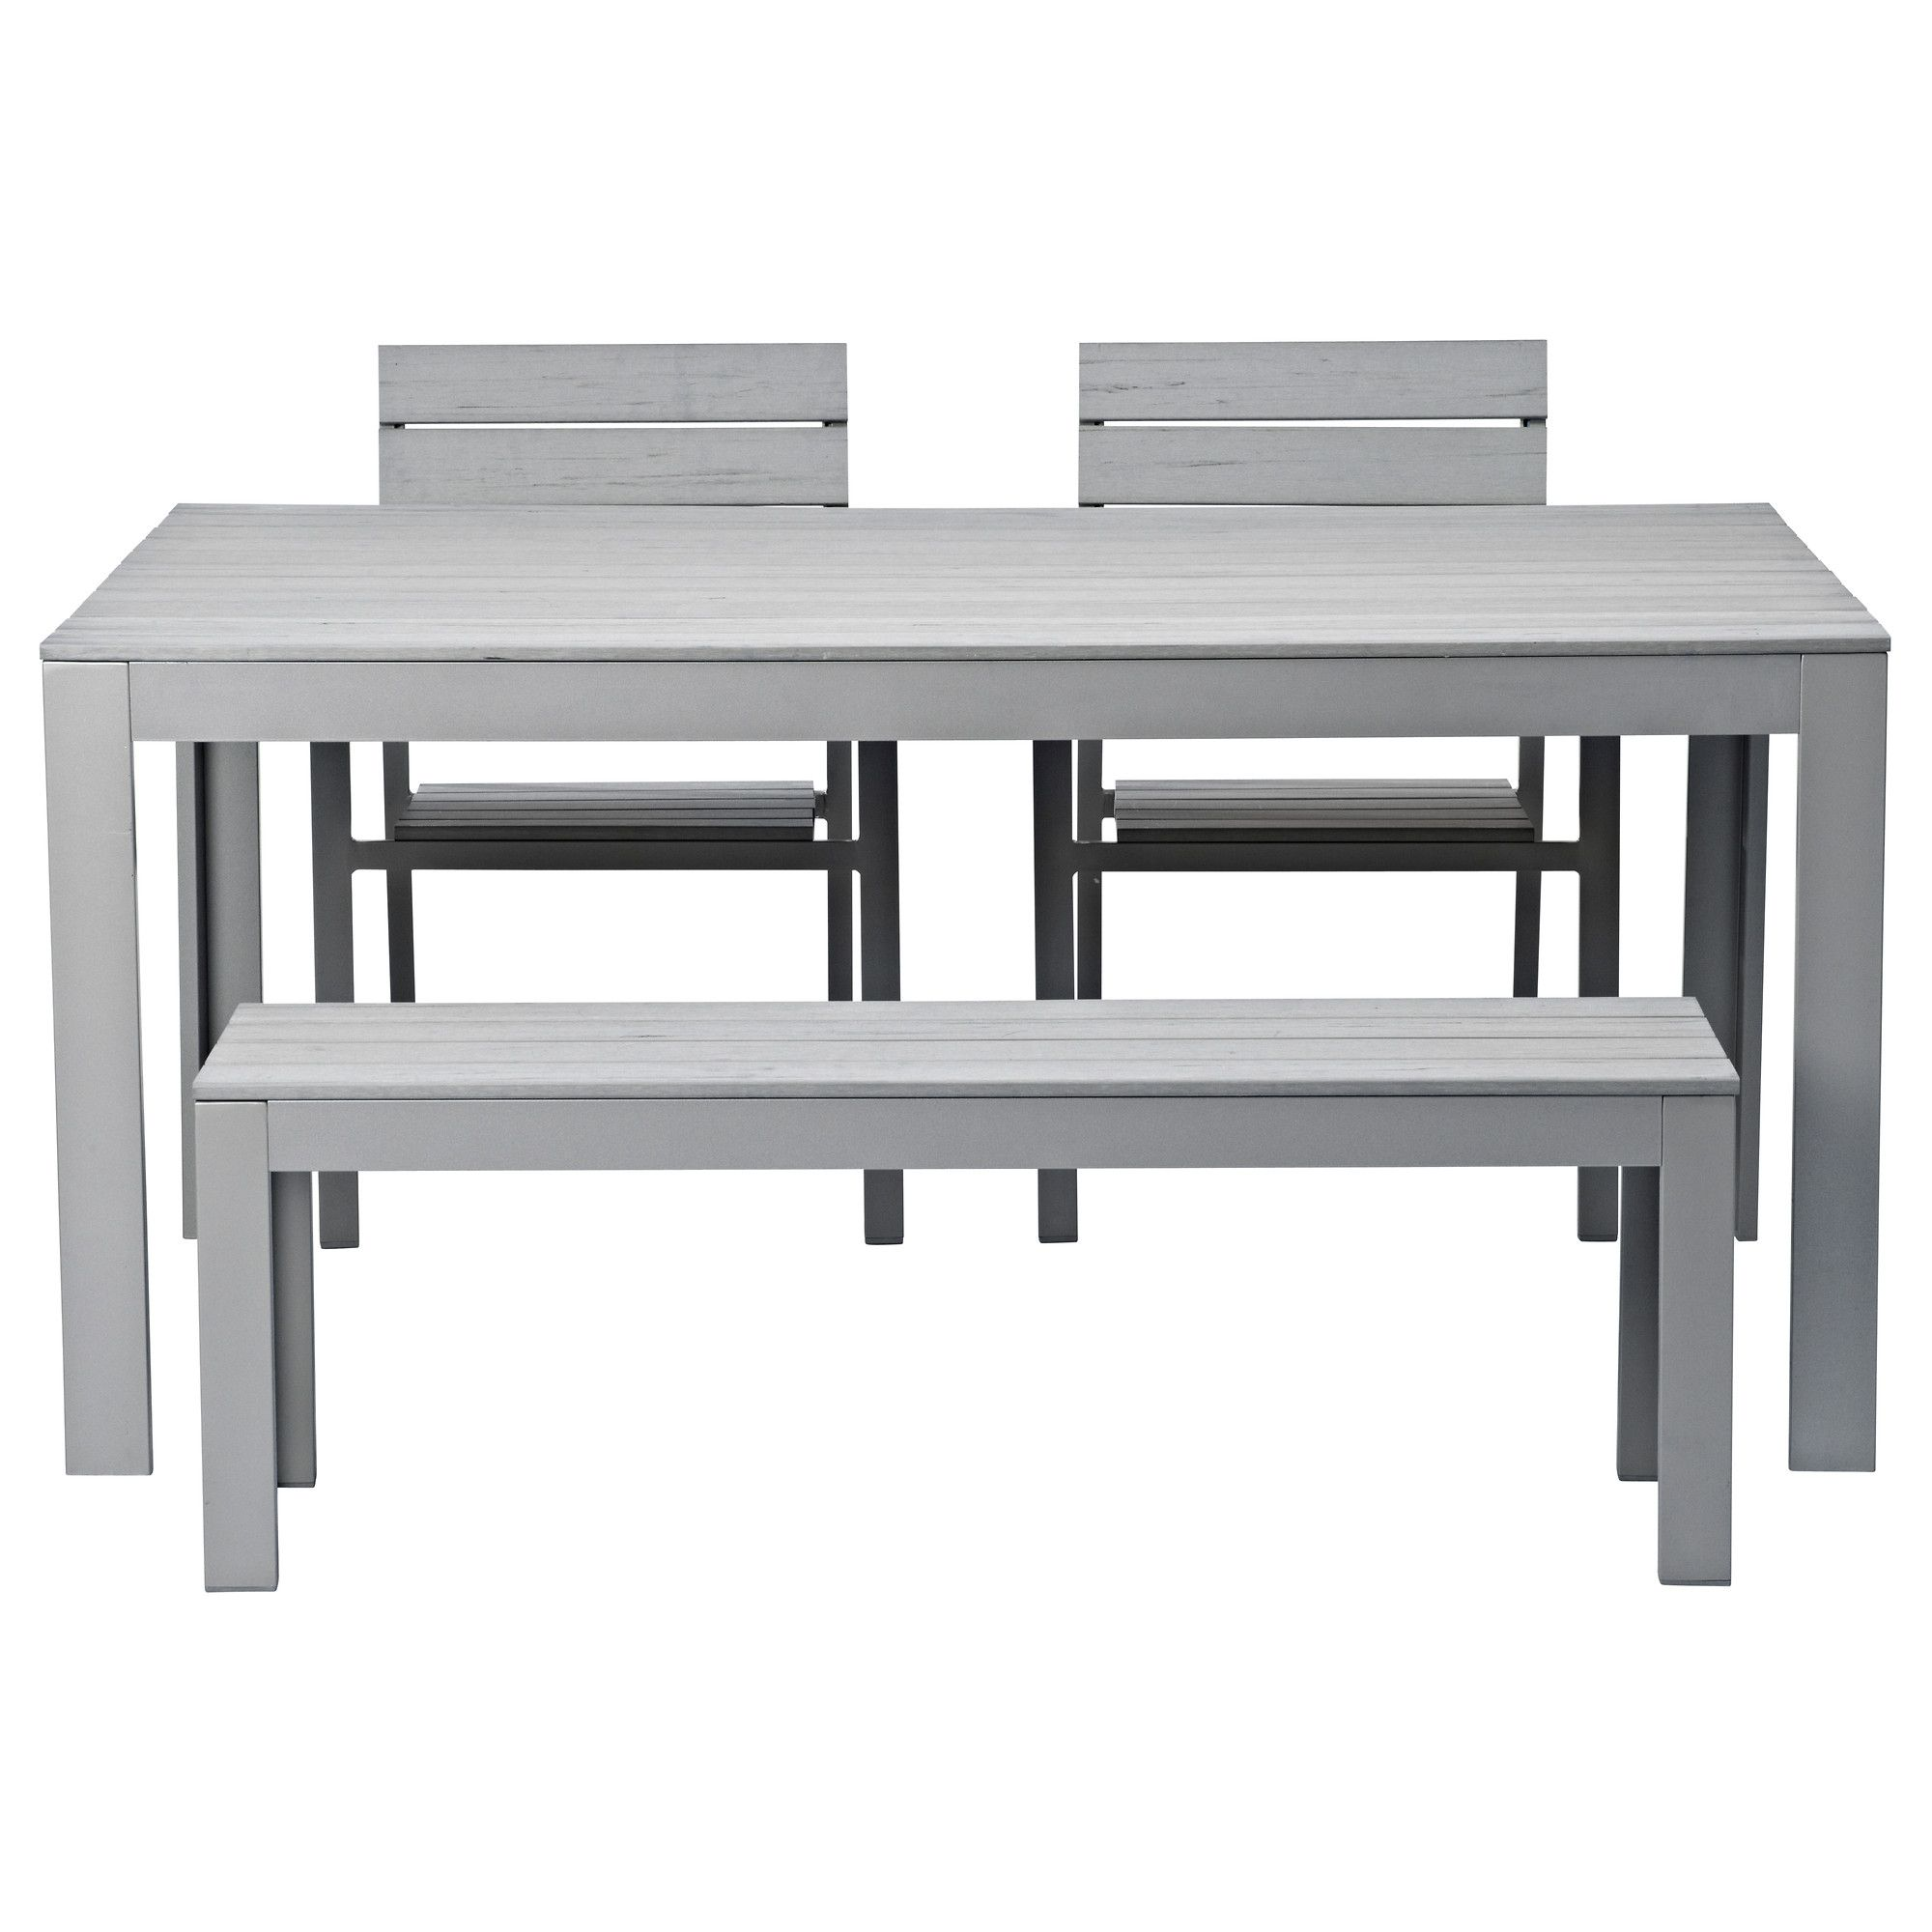 ekedalen ikea cn bench dining categories series catalog en